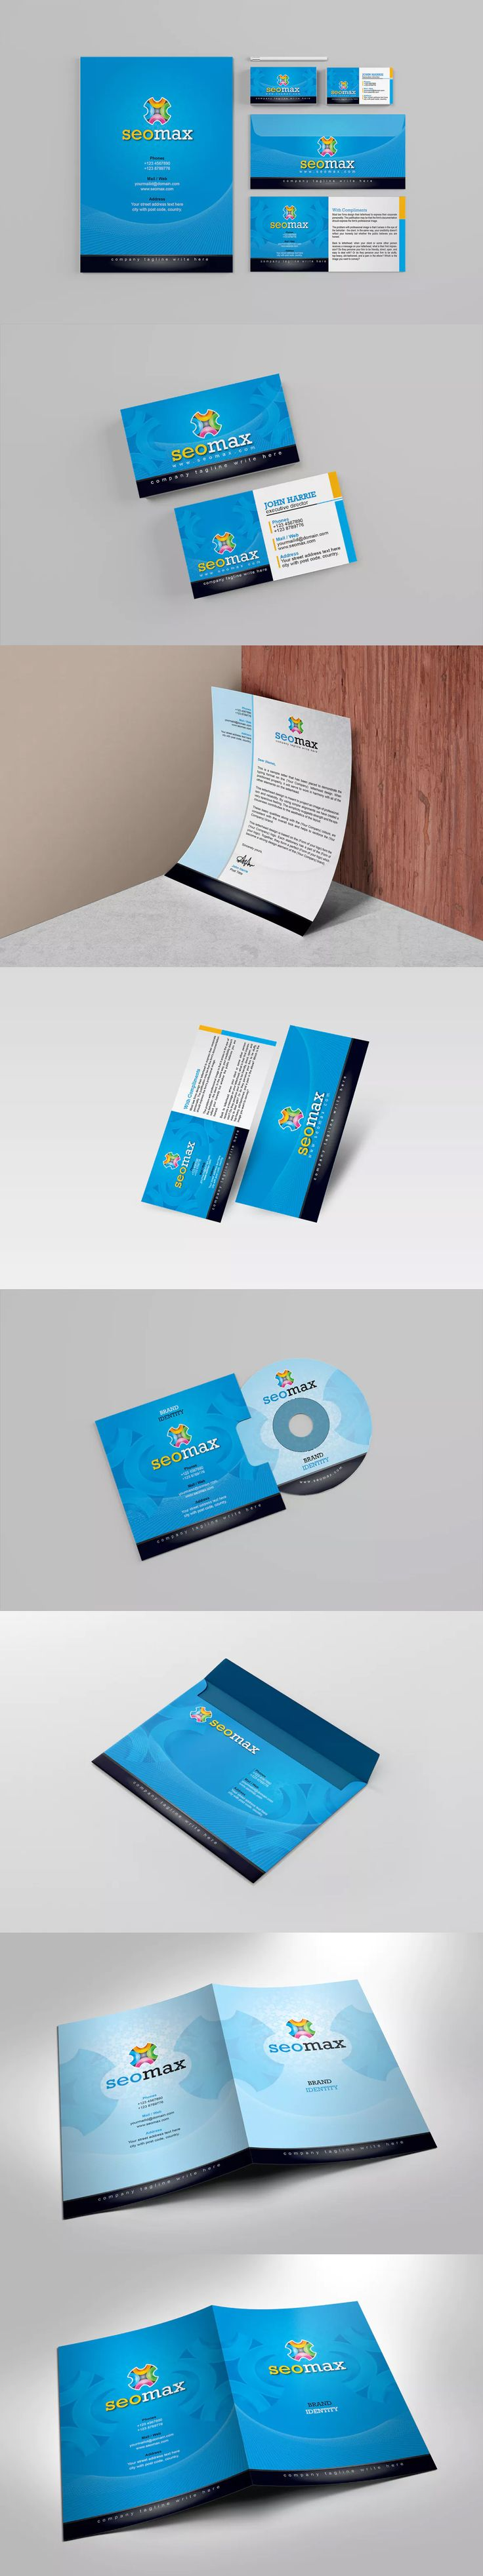 54 best Corporate Identity Template images on Pinterest ...